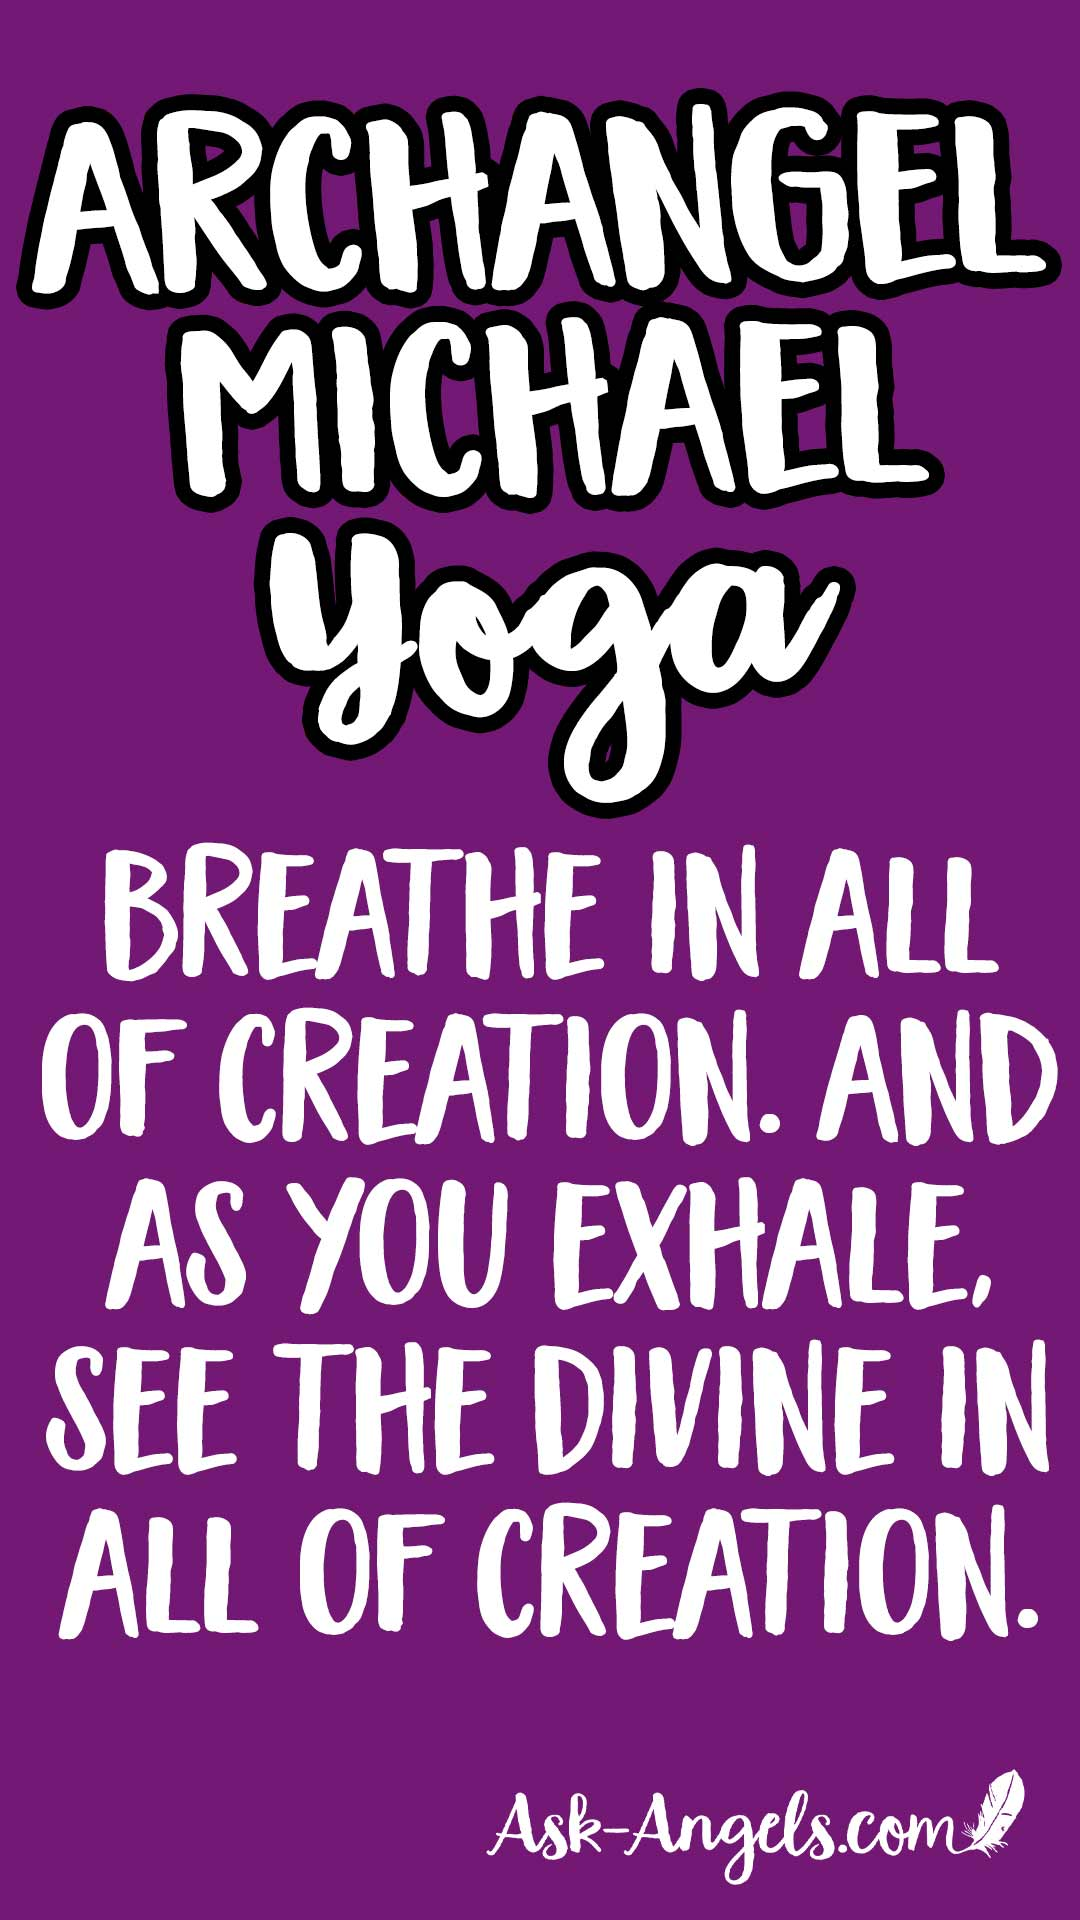 Archangel Michael Yoga- Breathe in all of creation and as you exhale see the Divine in all of Creation.